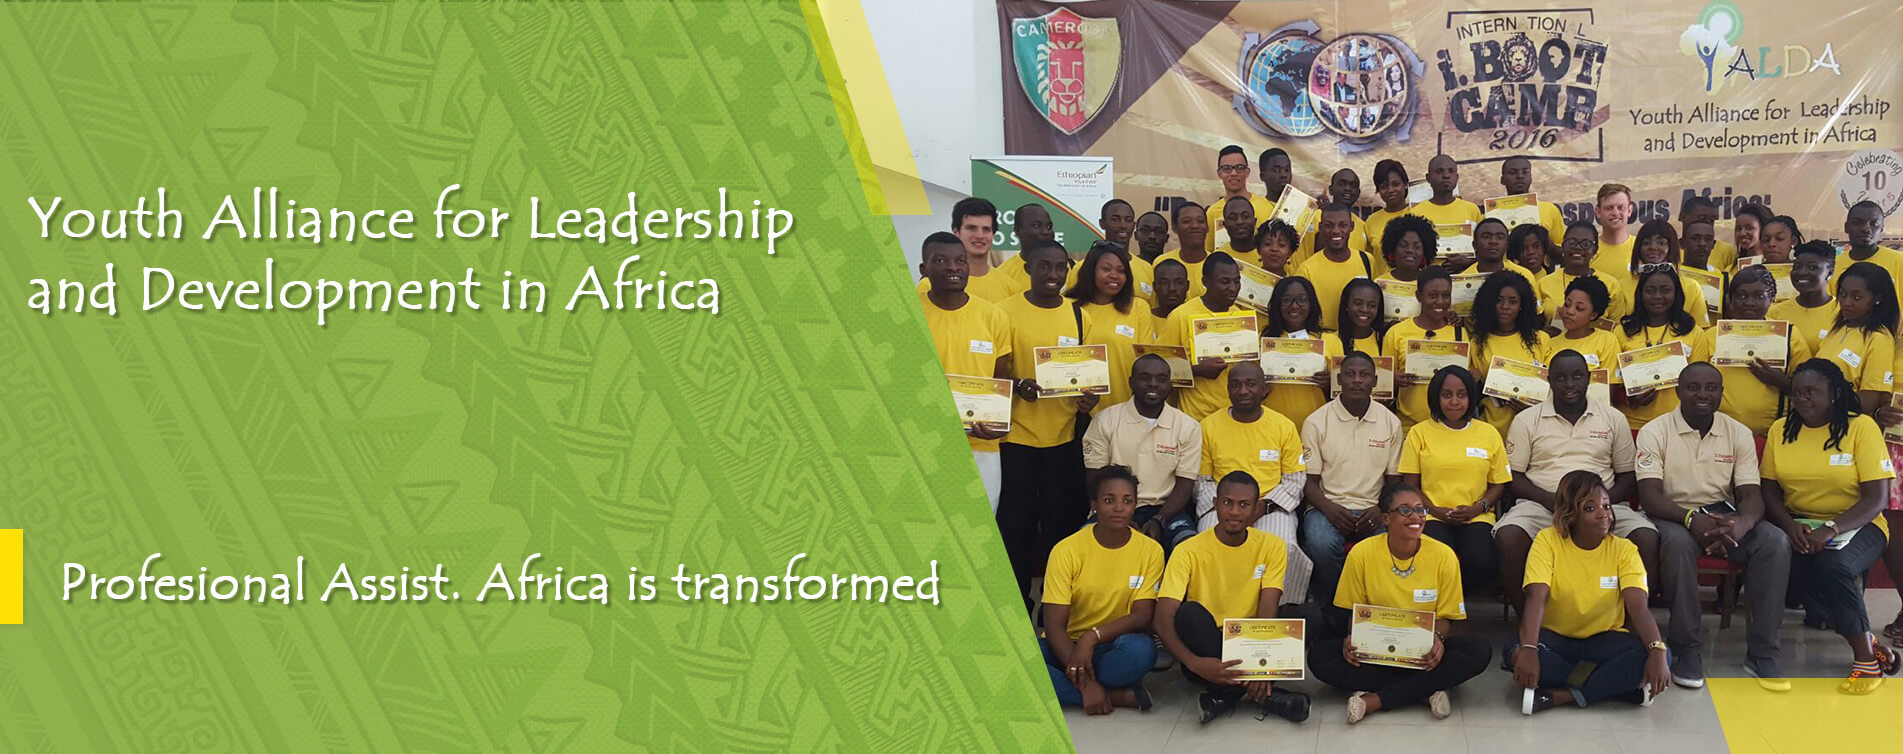 Professional assist Africa is transformed